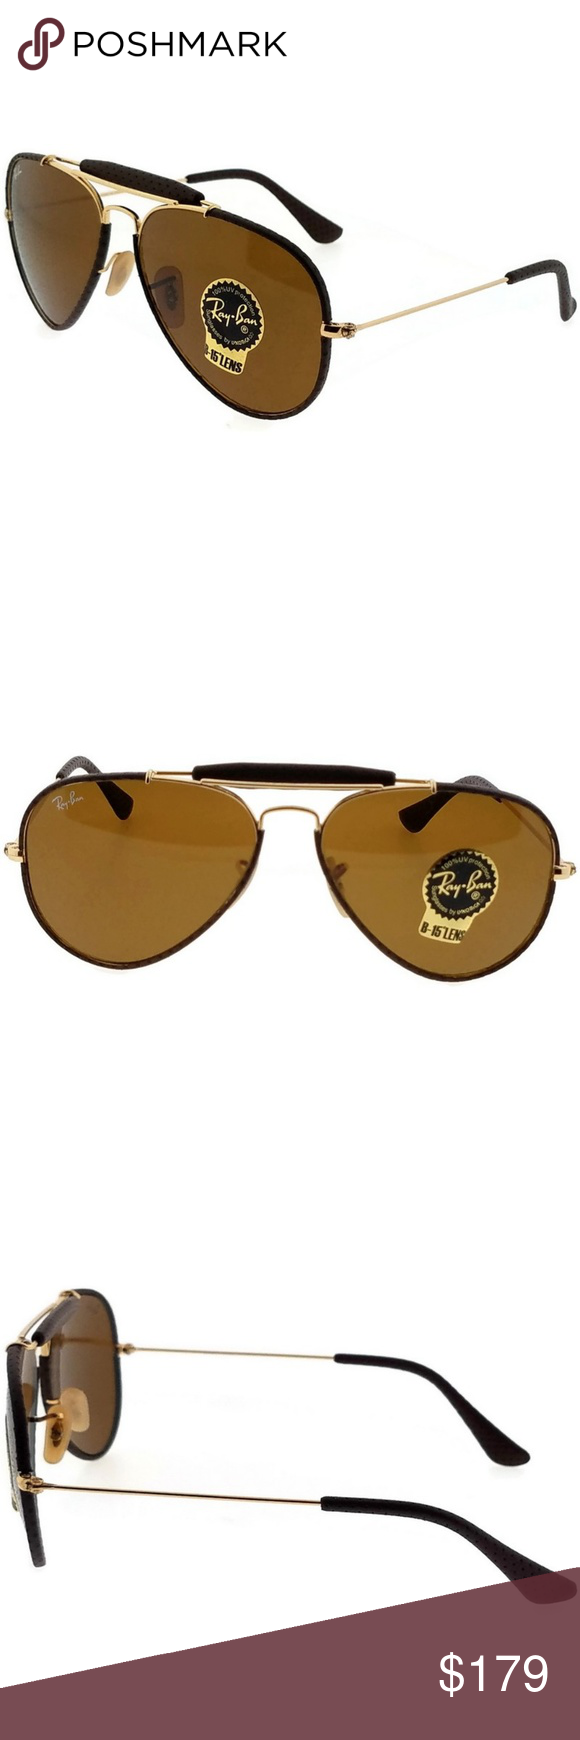 555883a75a RB3422Q-9041-58 RAY BAN SUNGLASSES New gorgeous authentic Ray-Ban RB3422Q-